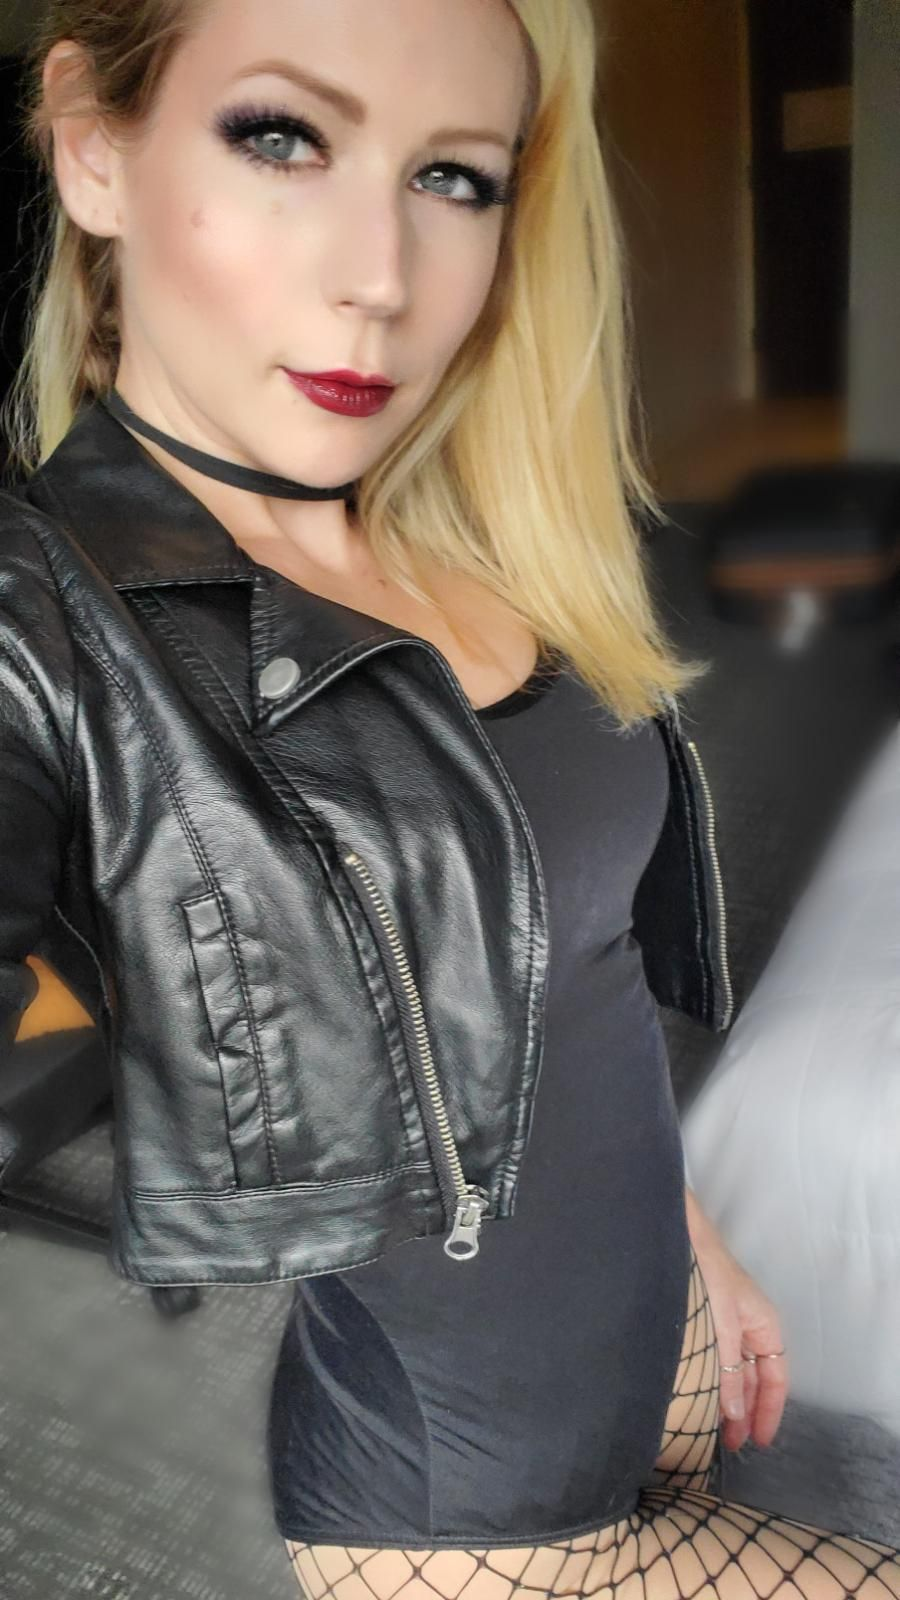 [self] Victoria Paege as Black Canary (DC Comics) cosplay